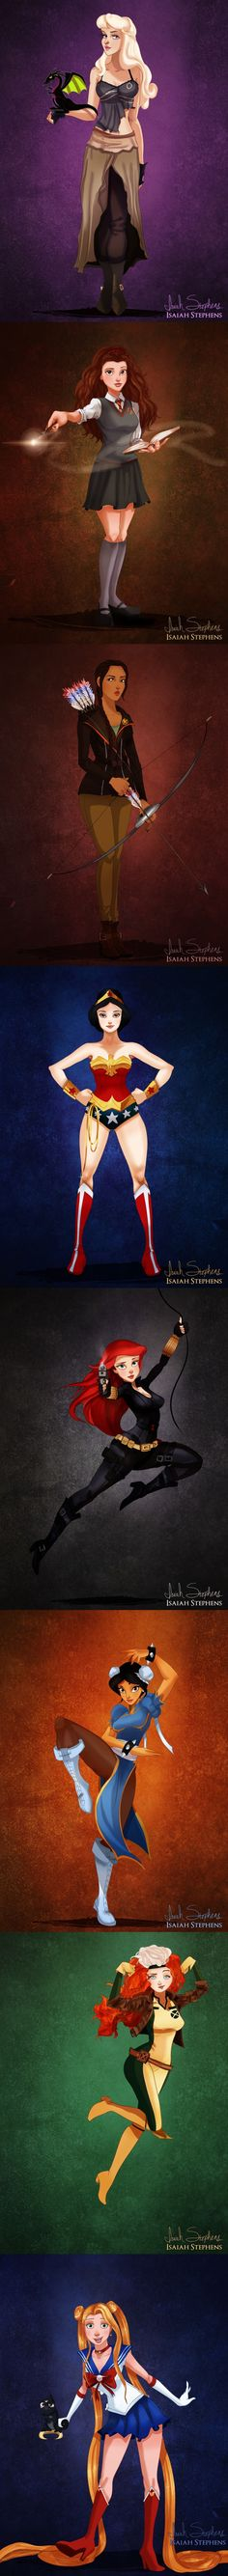 Disney Princesses Dressed Up in Pop Culture Halloween Costumes (Just because)